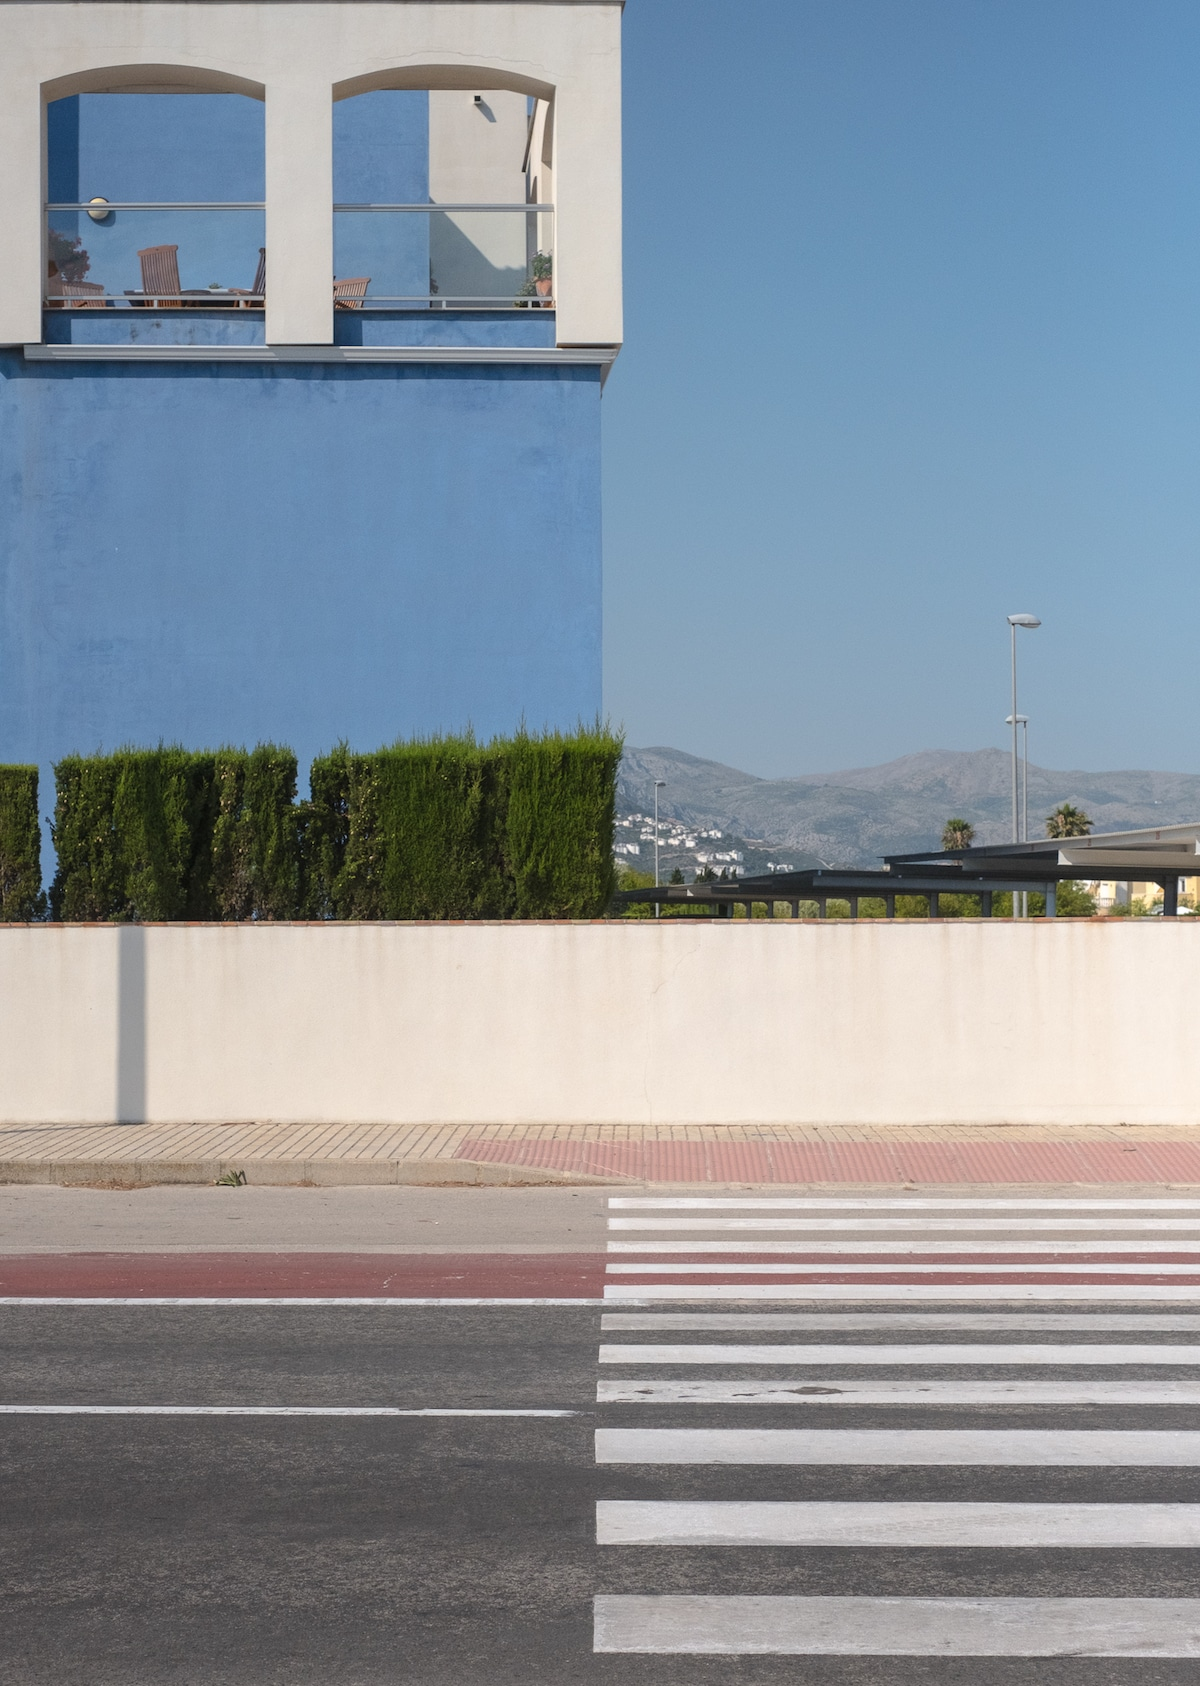 natural coincidences photographed denis cherim